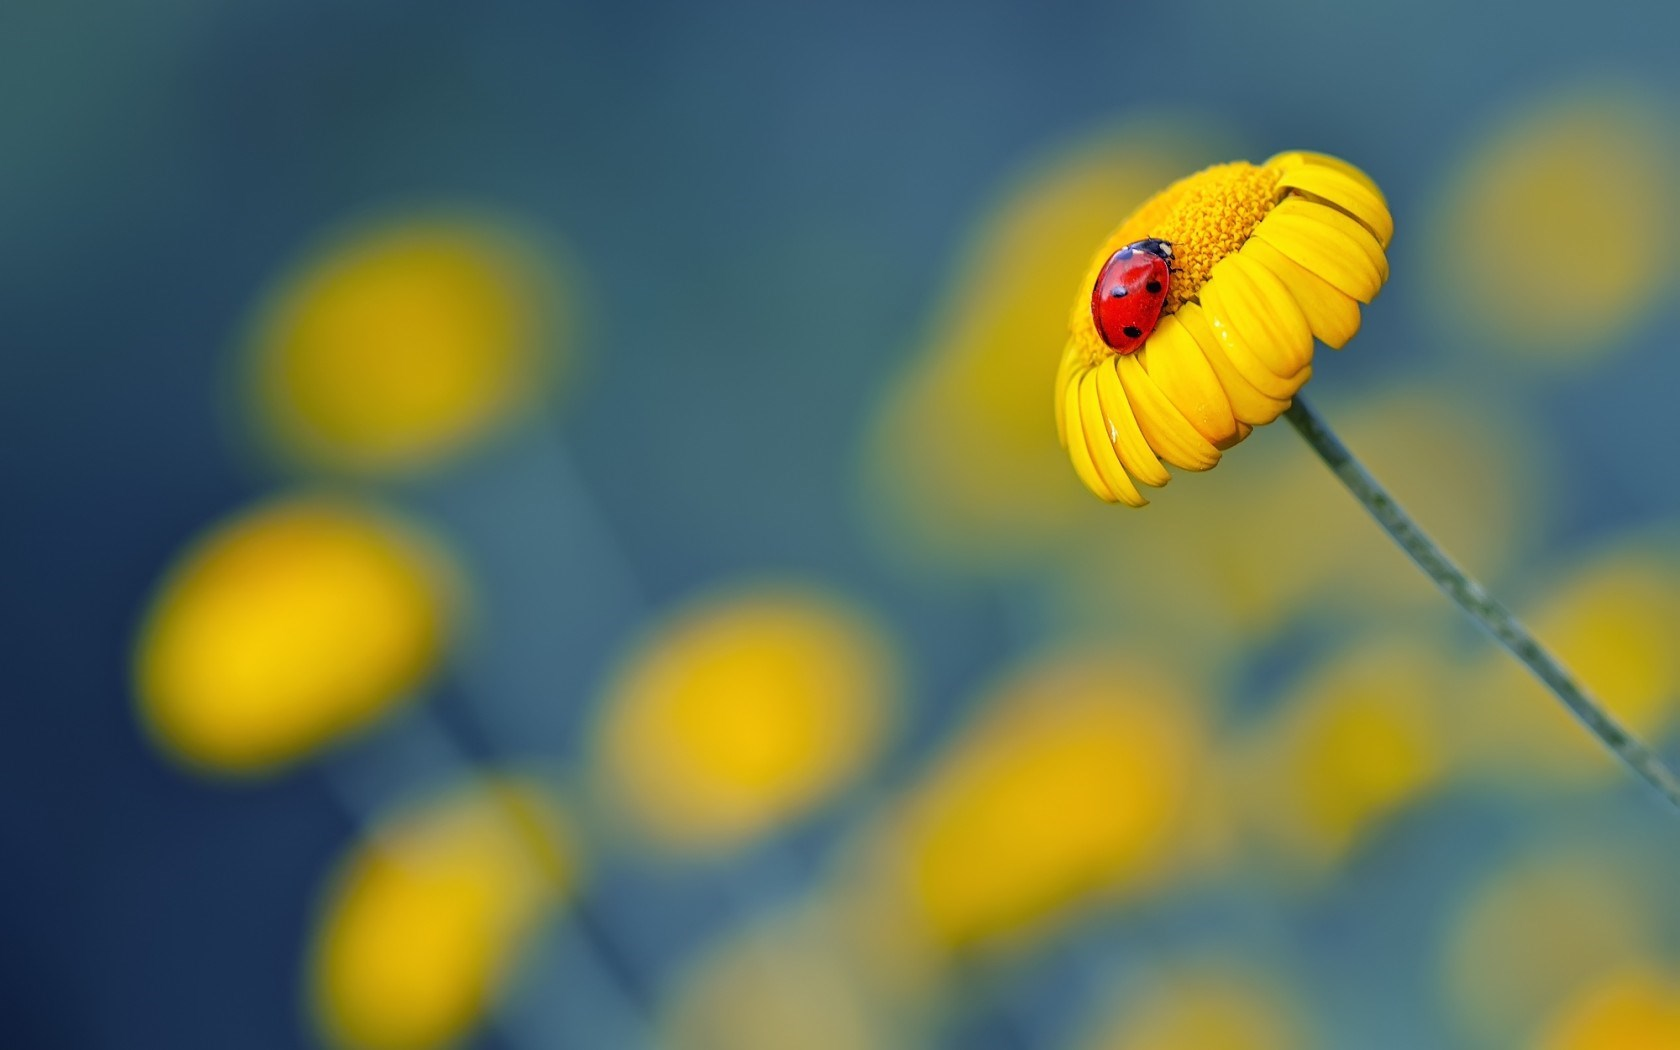 ... yellow flower, daisy, petals, ladybug, nature, macro, picture, hd